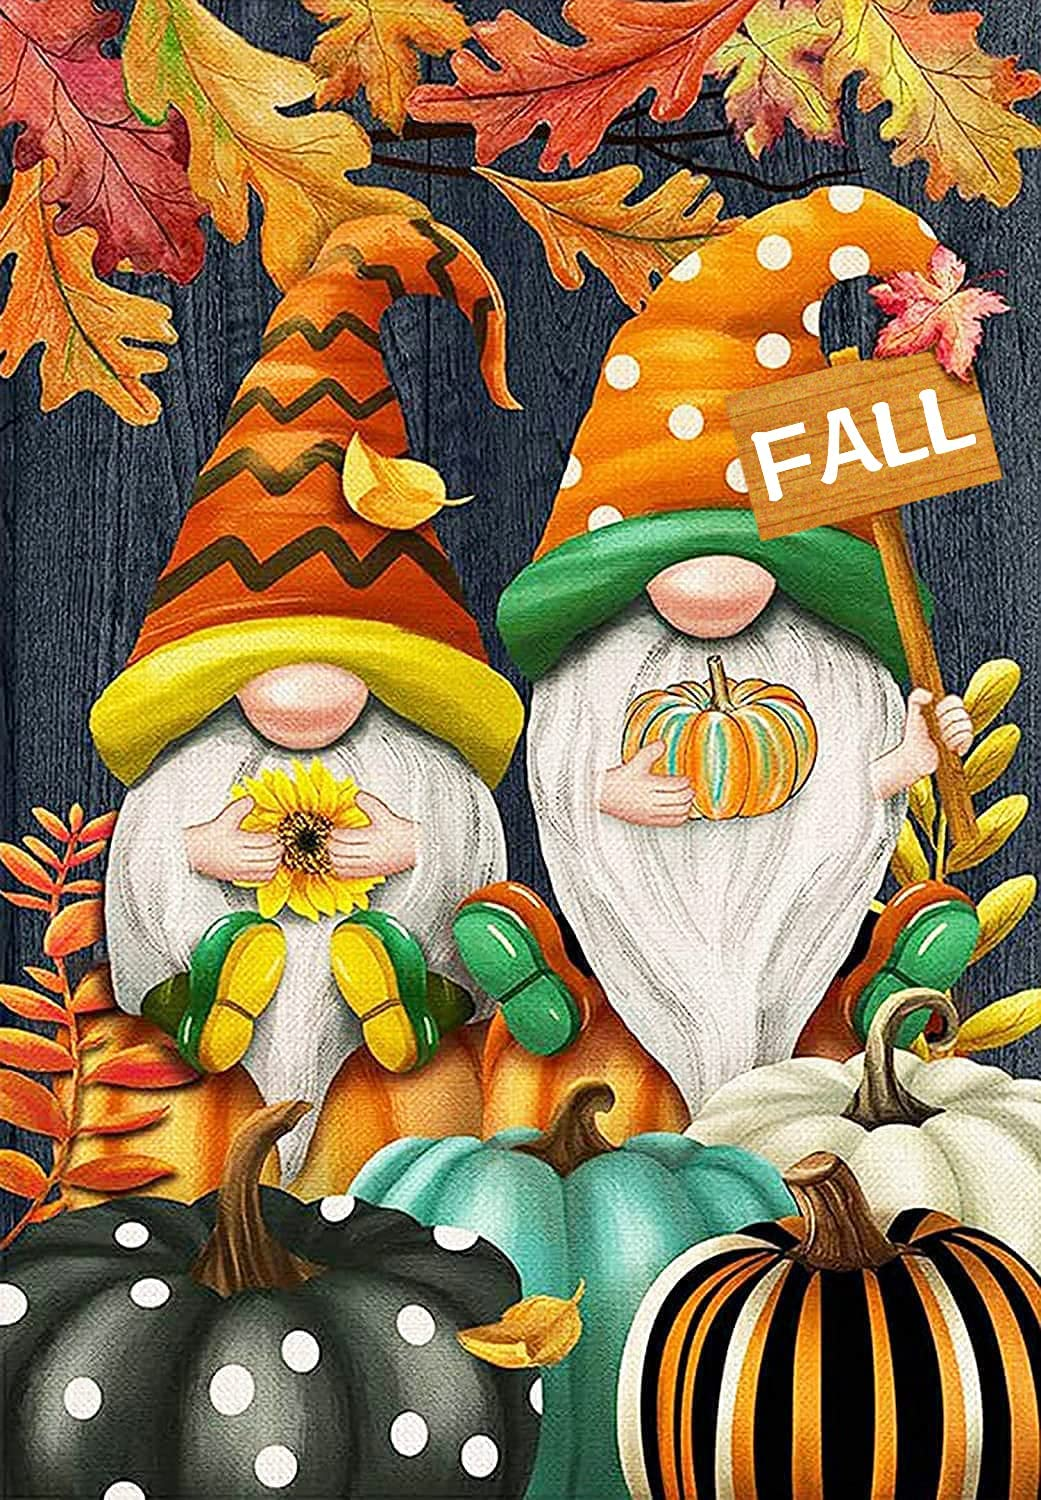 NAIMOER Diamond Painting Kits for Adults, DIY Full Drill Christmas Diamond Painting Fall Gnomes Pumpkins Round Diamond Art by Numbers Kits Gem Painting Crafts for Home Wall Decor 12x16 Inch